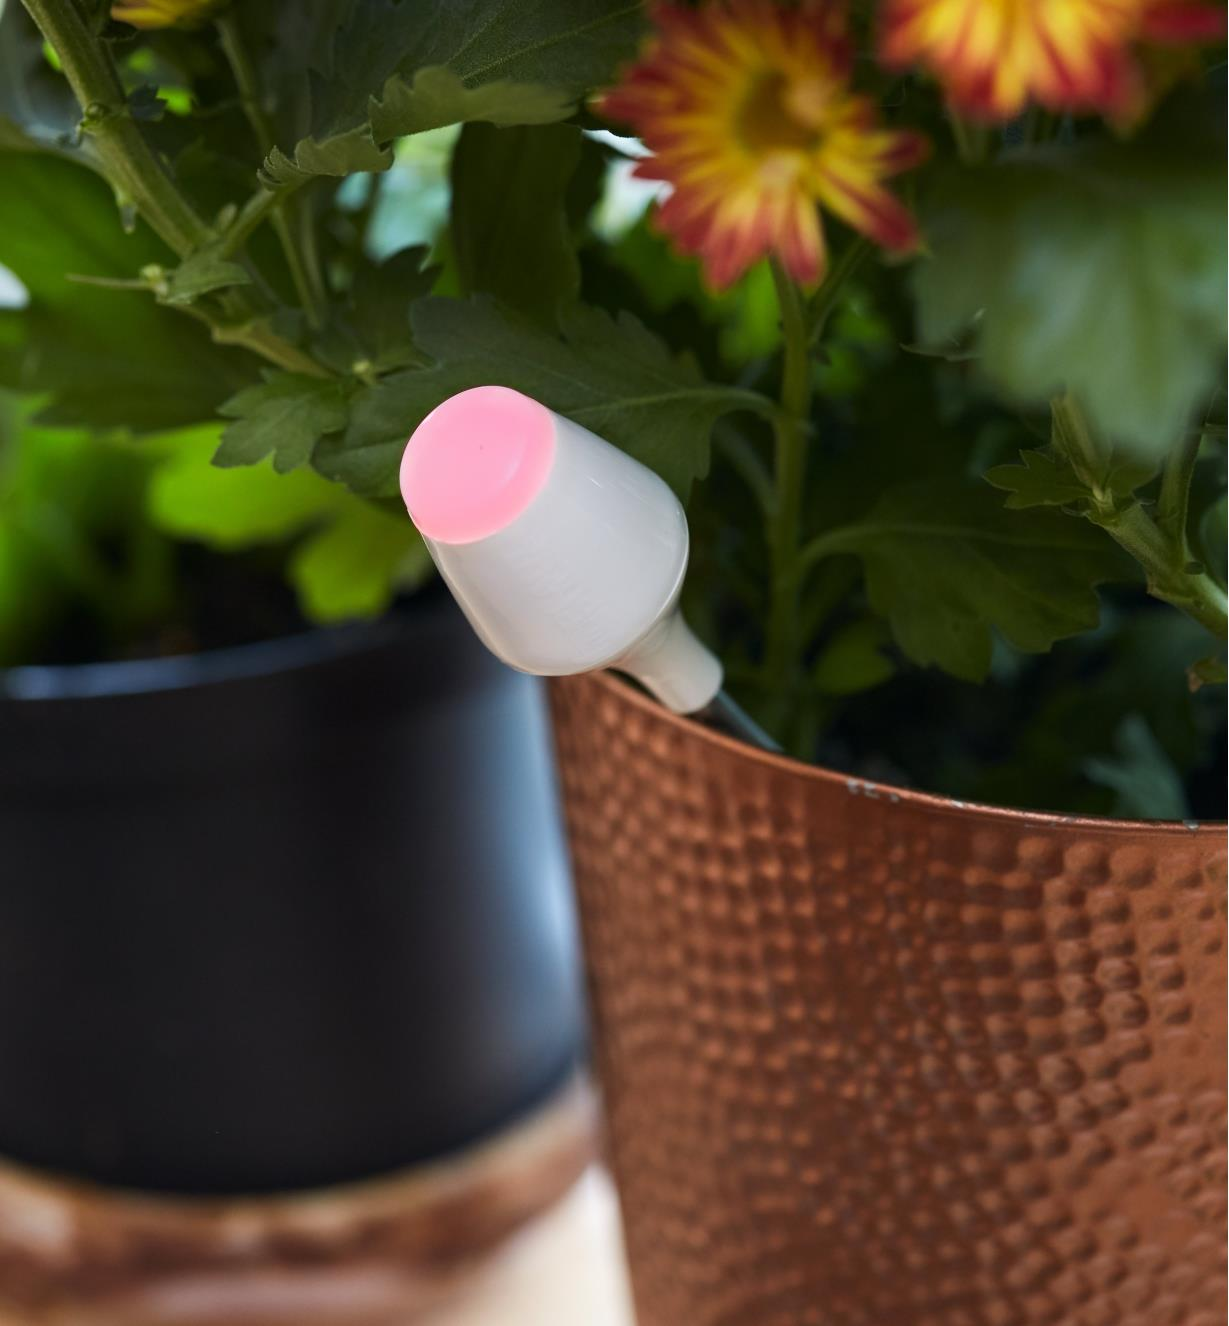 The moisture sensor's blinking red LED indicates that the moisture level in a potted plant's soil is low